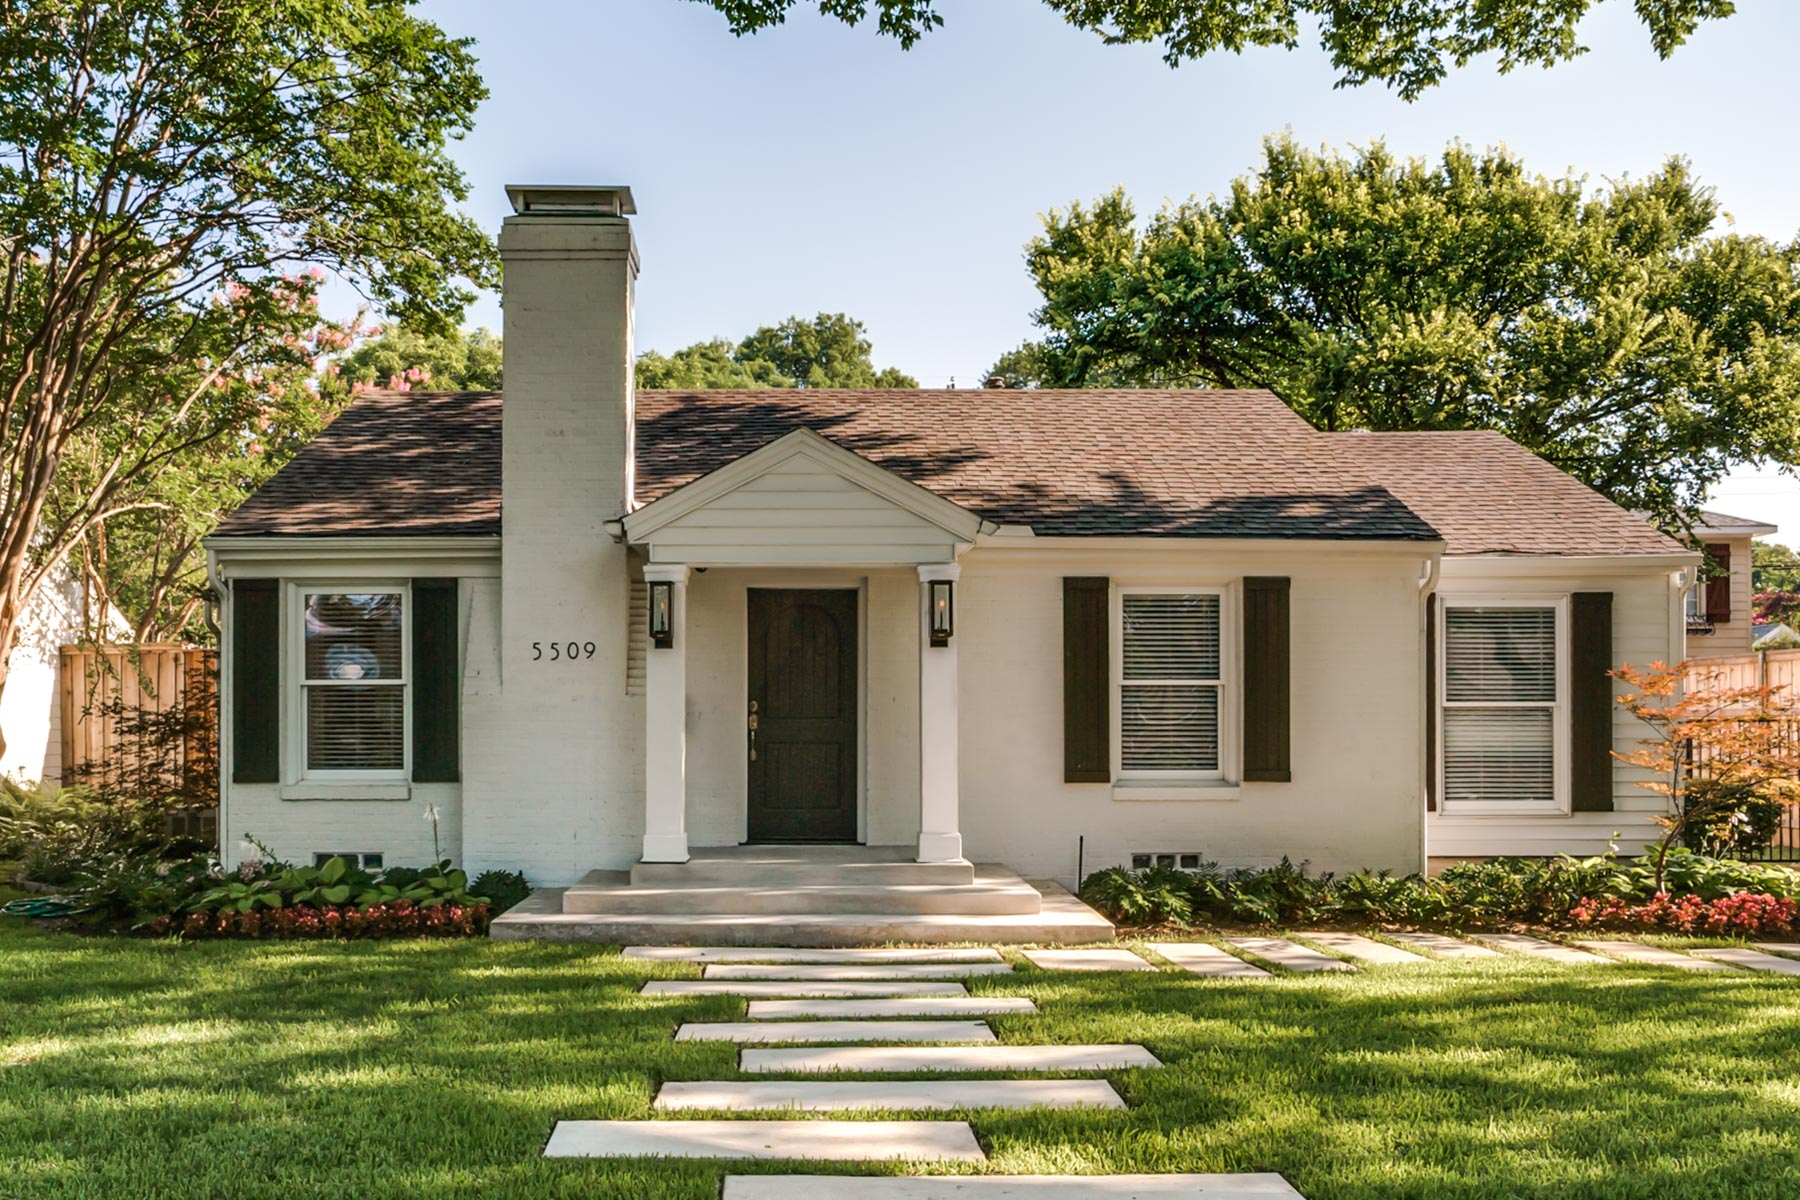 Maison unifamiliale pour l Vente à Renovated Devonshire Cottage on Premier Street 5509 Southwestern Blvd Dallas, Texas, 75209 États-Unis